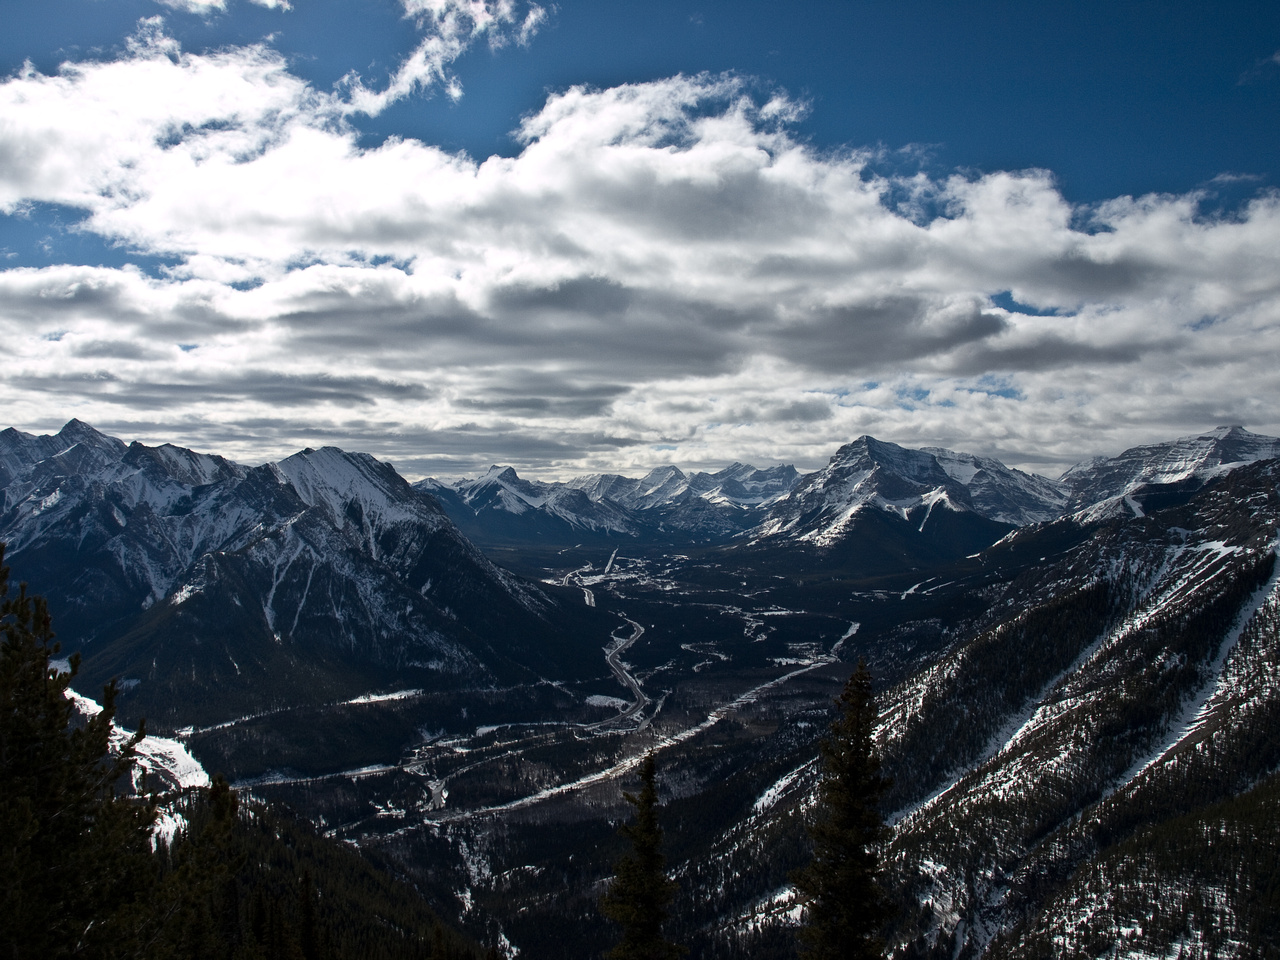 McDougall, Kananaskis Peak, Wasootch, The Wedge, James Walker, Fortress, Kidd and Bogart (L to R).